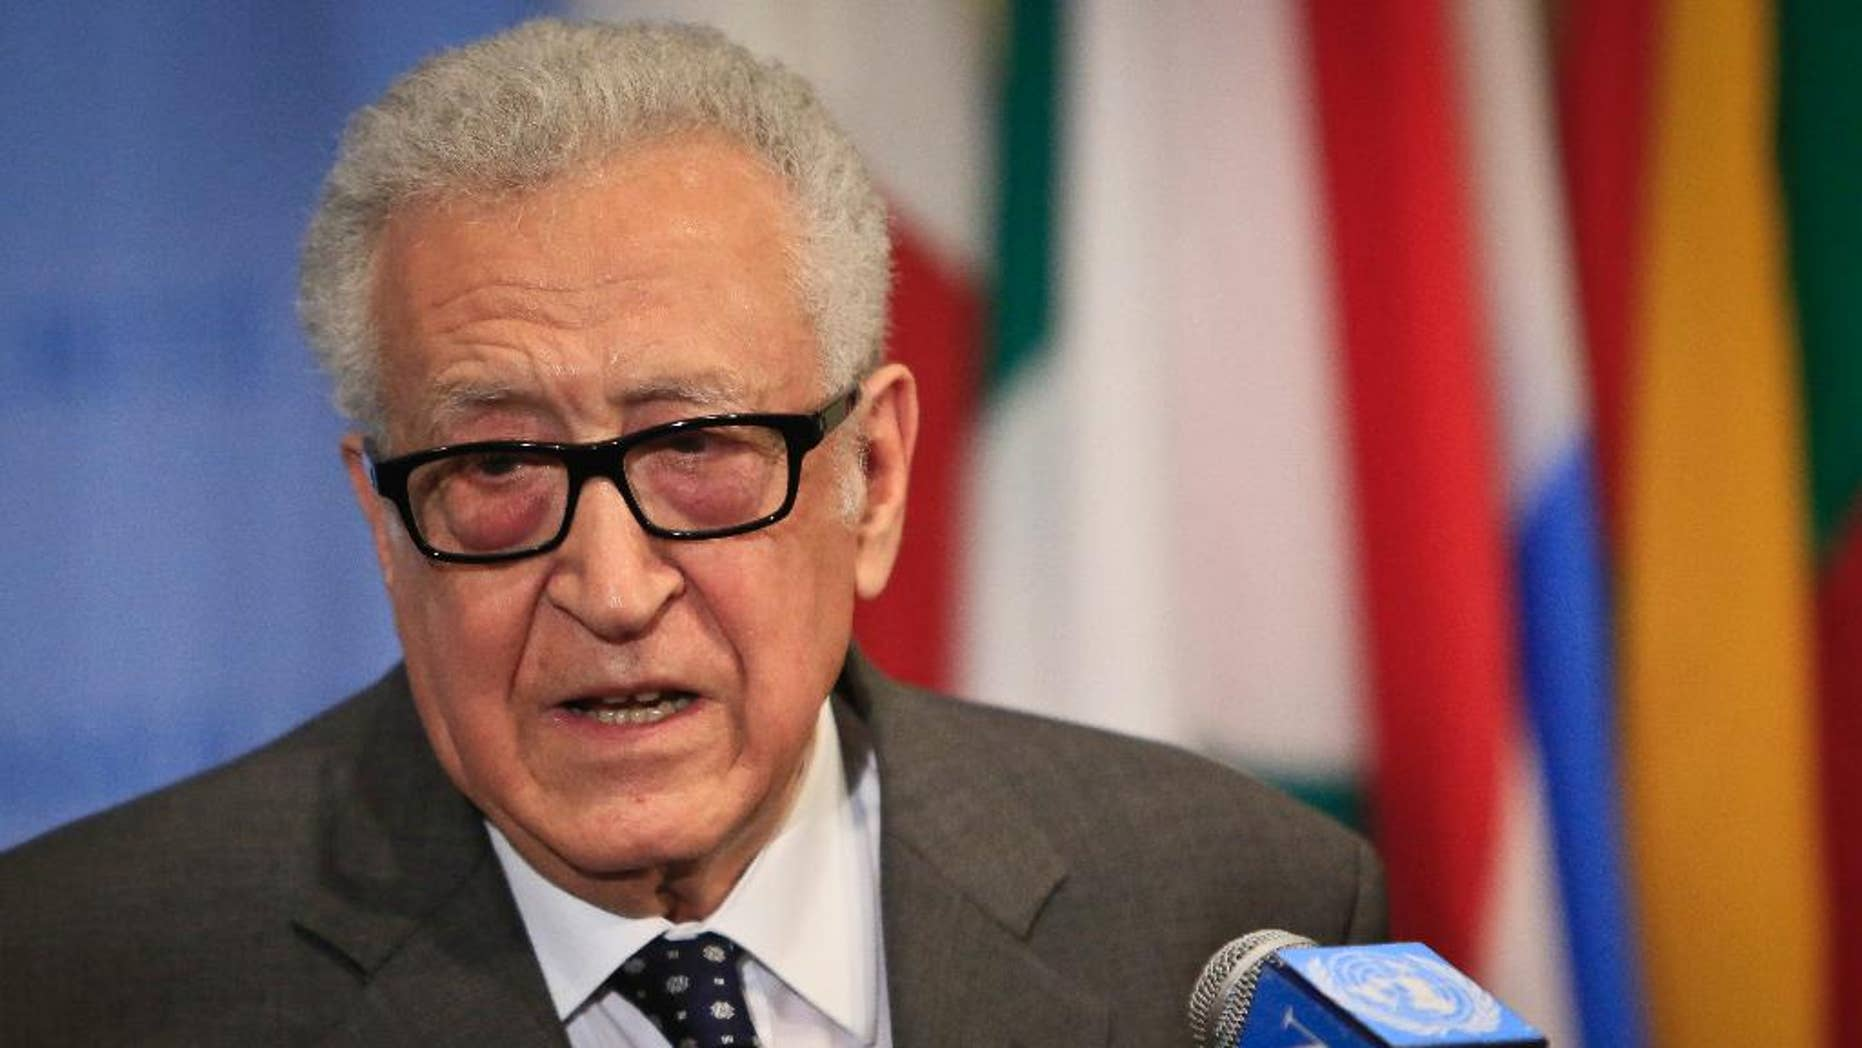 Lakhdar Brahimi, U.N. and Arab League Special Envoy to Syria, speaks during a news conference after closed meetings in the U.N. Security Council, Tuesday, May 13, 2014, at United Nations headquarters. Brahimi resigned Tuesday, following in the footsteps of his longtime friend, former U.N. secretary-general Kofi Annan, who resigned from the same job in August 2012 after failing to broker a cease-fire as the country descended into civil war. (AP Photo)